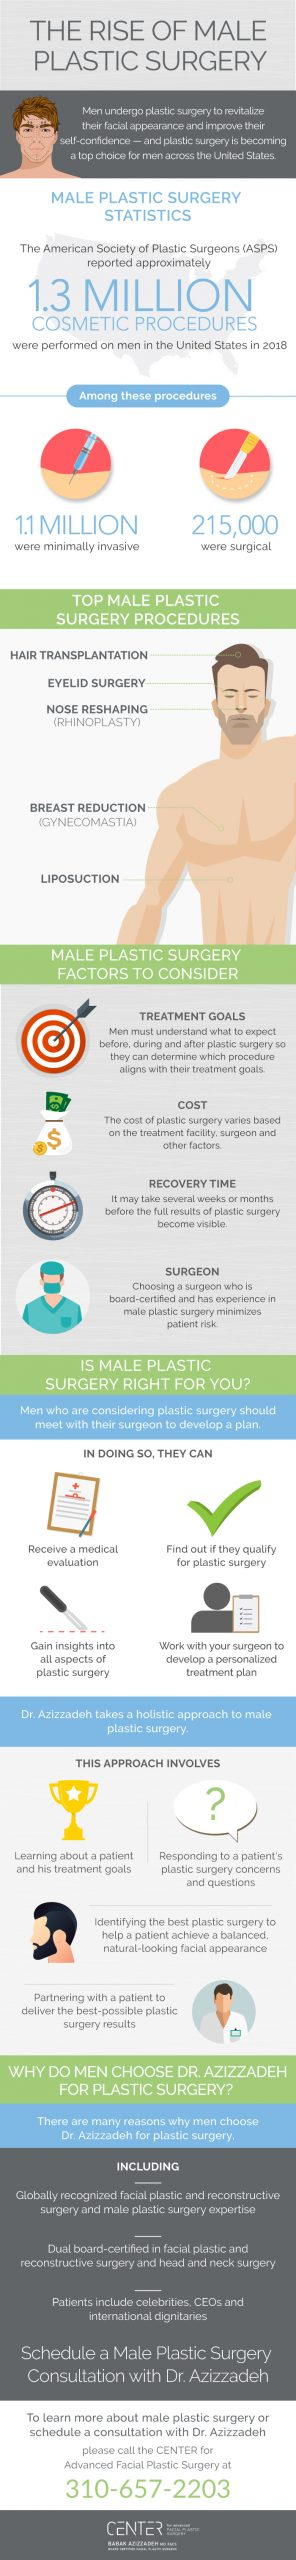 The rise of male plastic surgery